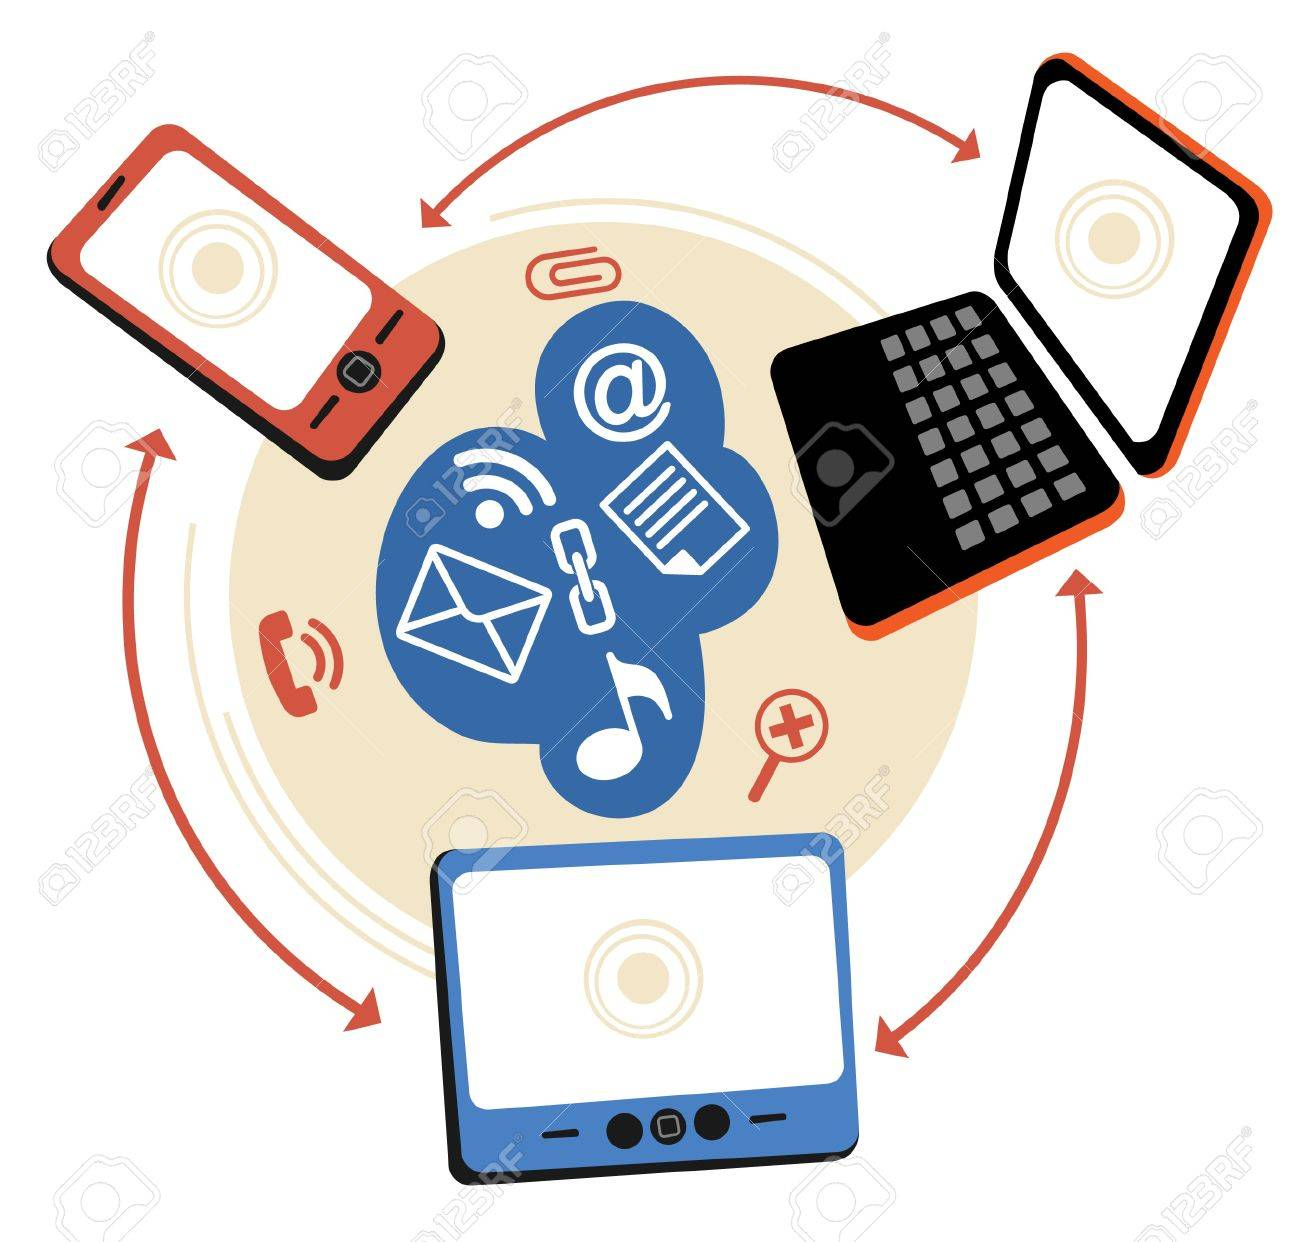 laptop phone tablet connection communication in the global computer rh 123rf com technology clip art pictures technology clipart free download editable